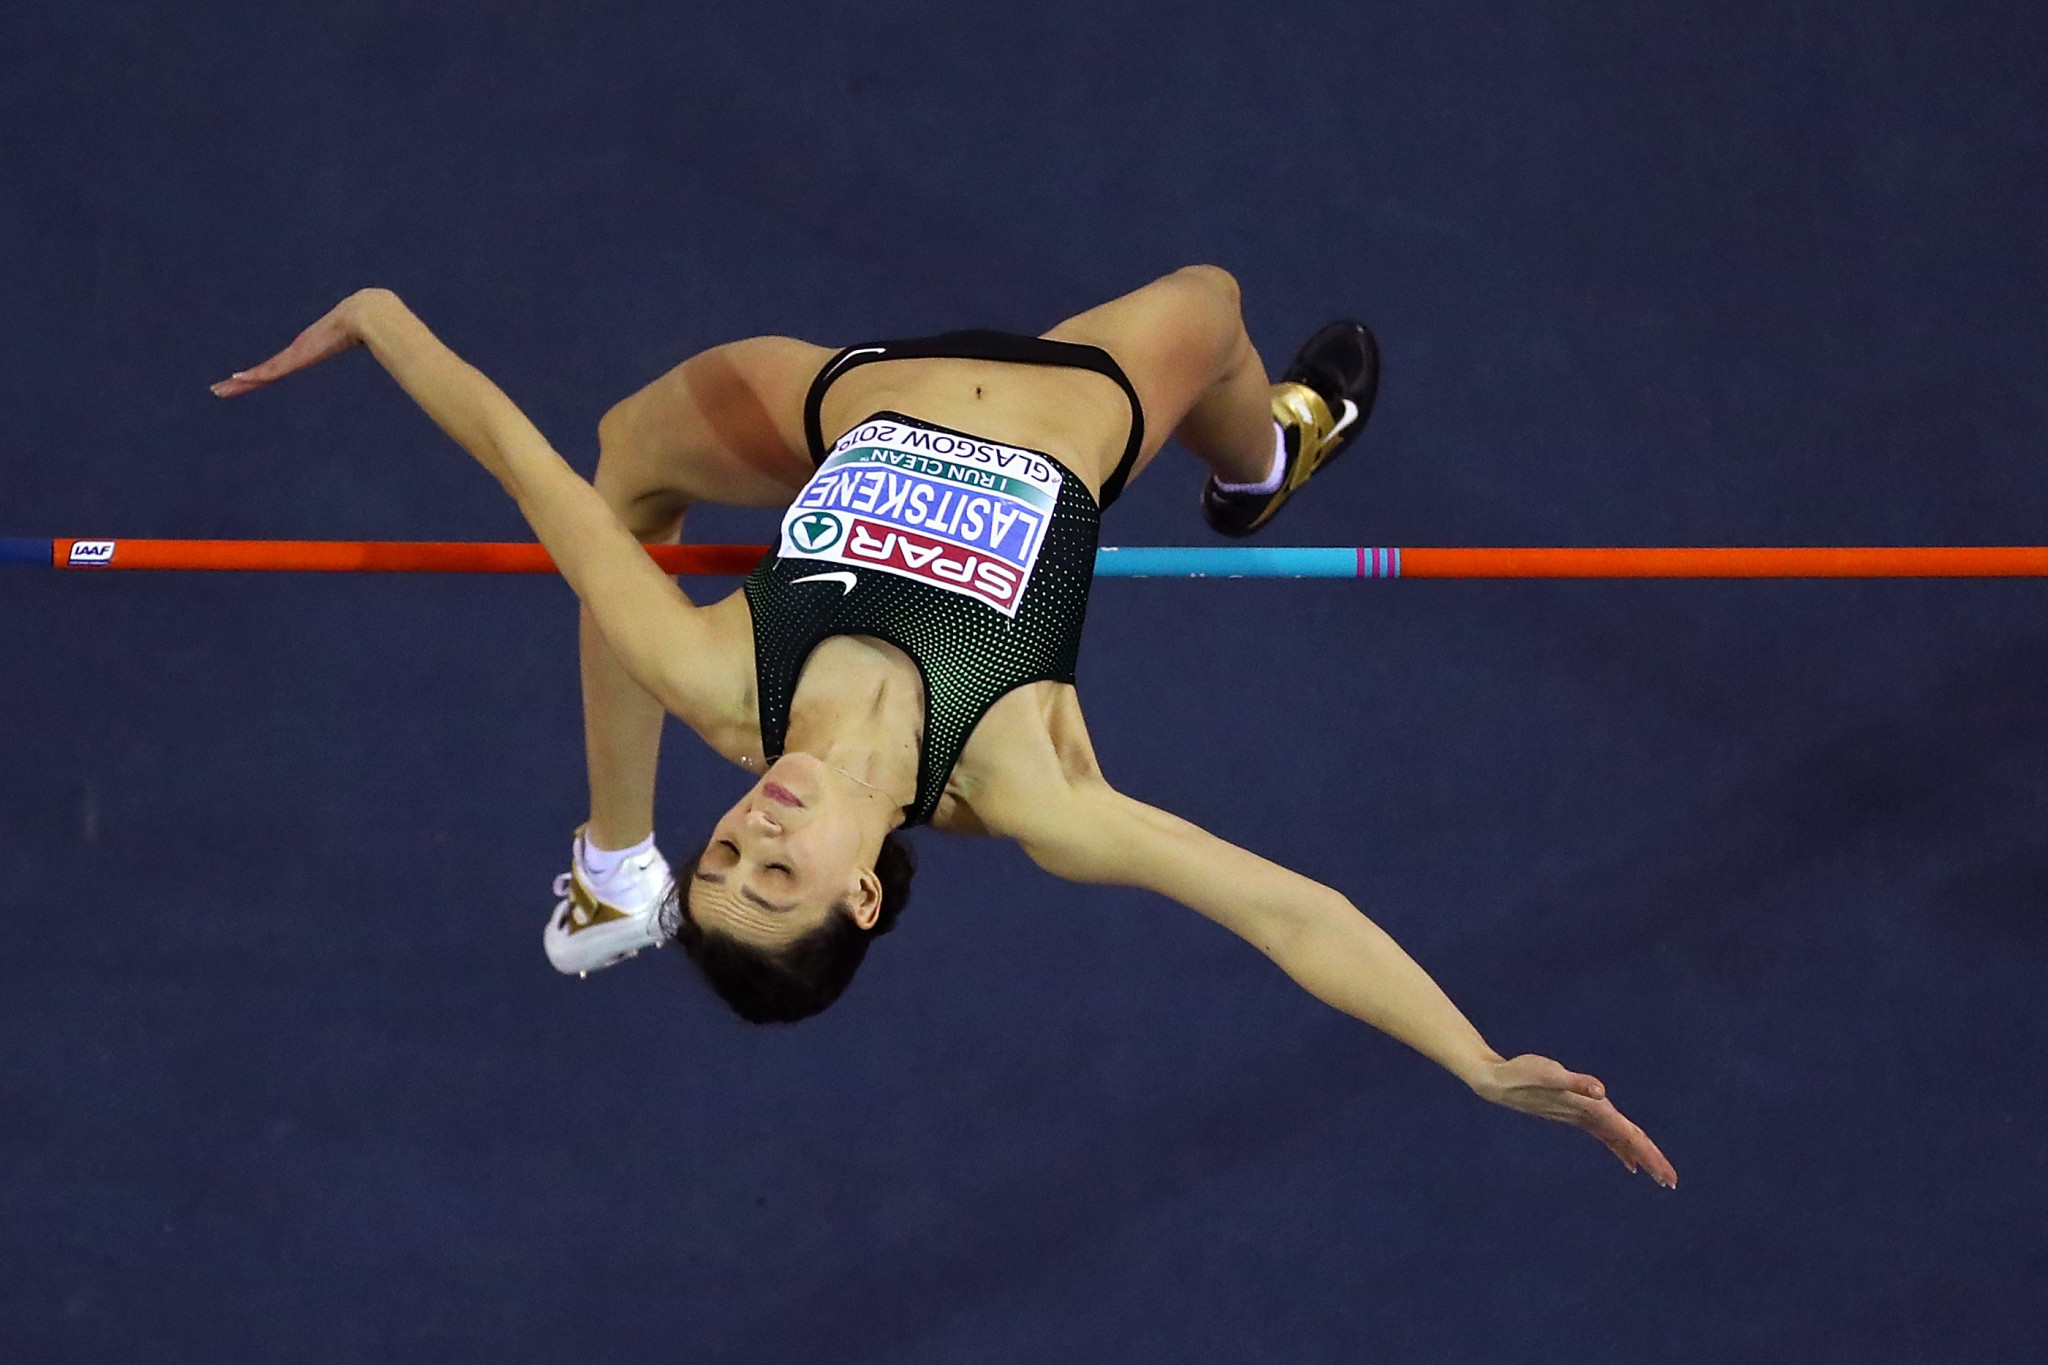 High jumper Mariya Lasitskene has called for changes in Russian sport leadership ©Getty Images